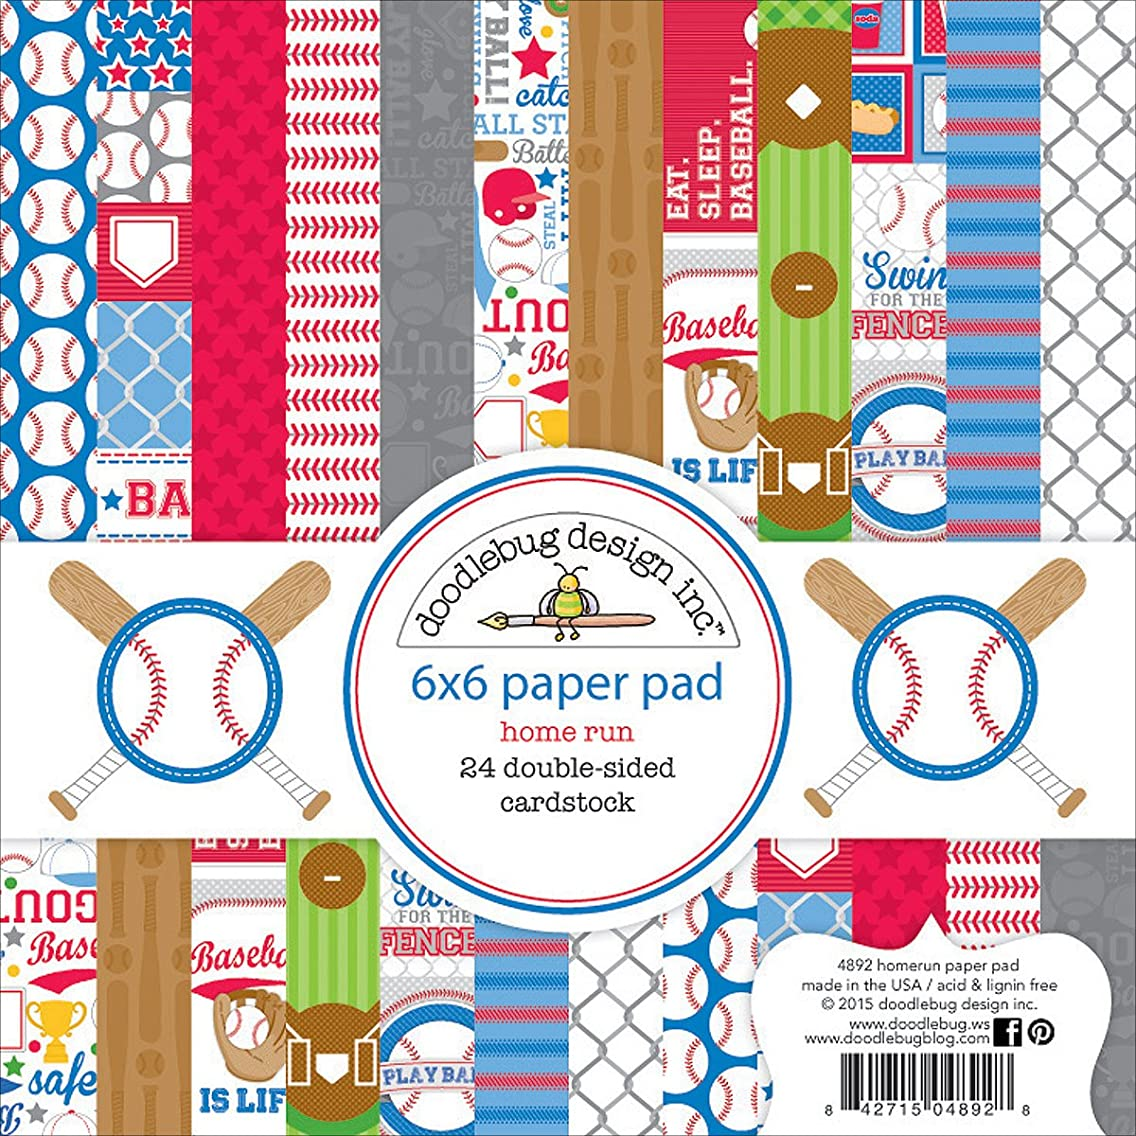 DOODLEBUG 4892 Double-Sided Paper Pad (24 Pack), 6